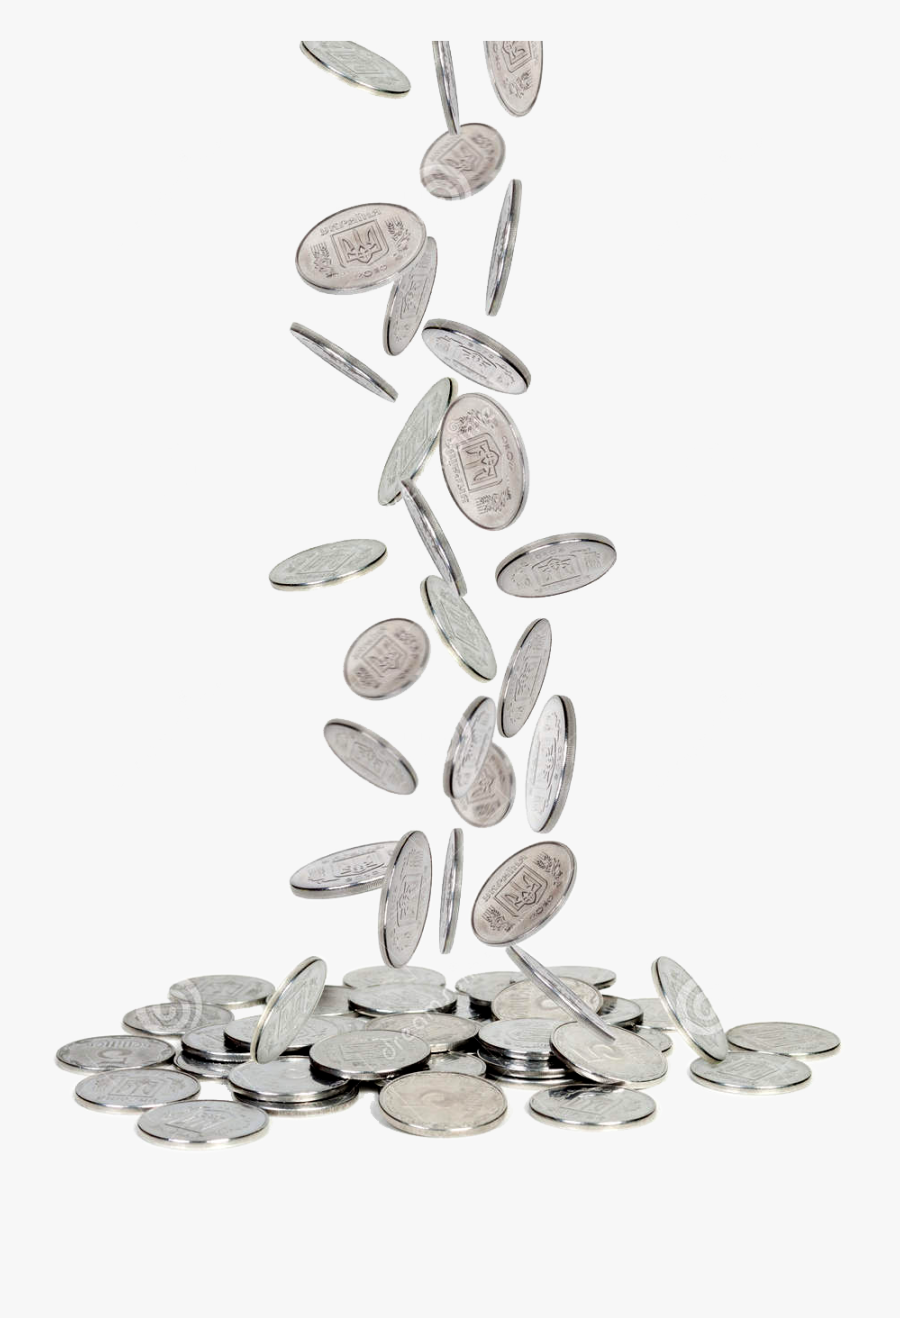 Silver Coins Png Falling Images Free - Transparent Silver Coins Png, Transparent Clipart